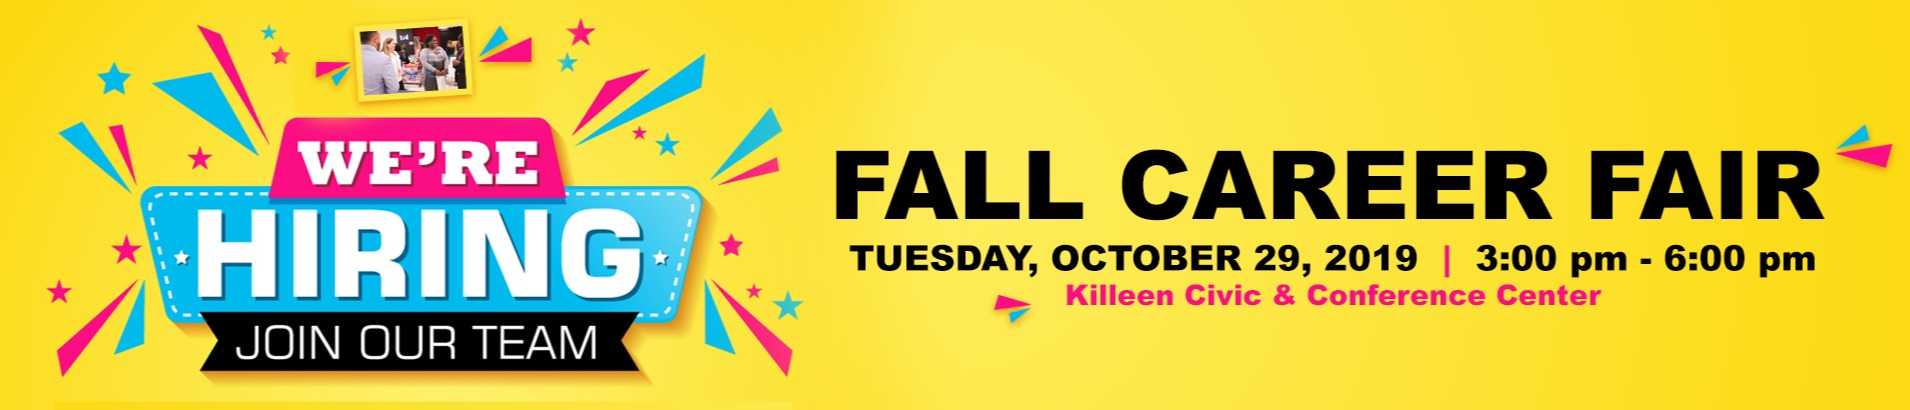 Fall Career Fair Web Banner promoting the October 29th Career Fair that will be held at the Killeen Civic and Conference Center from 3:00 pm to 6:00 pm.